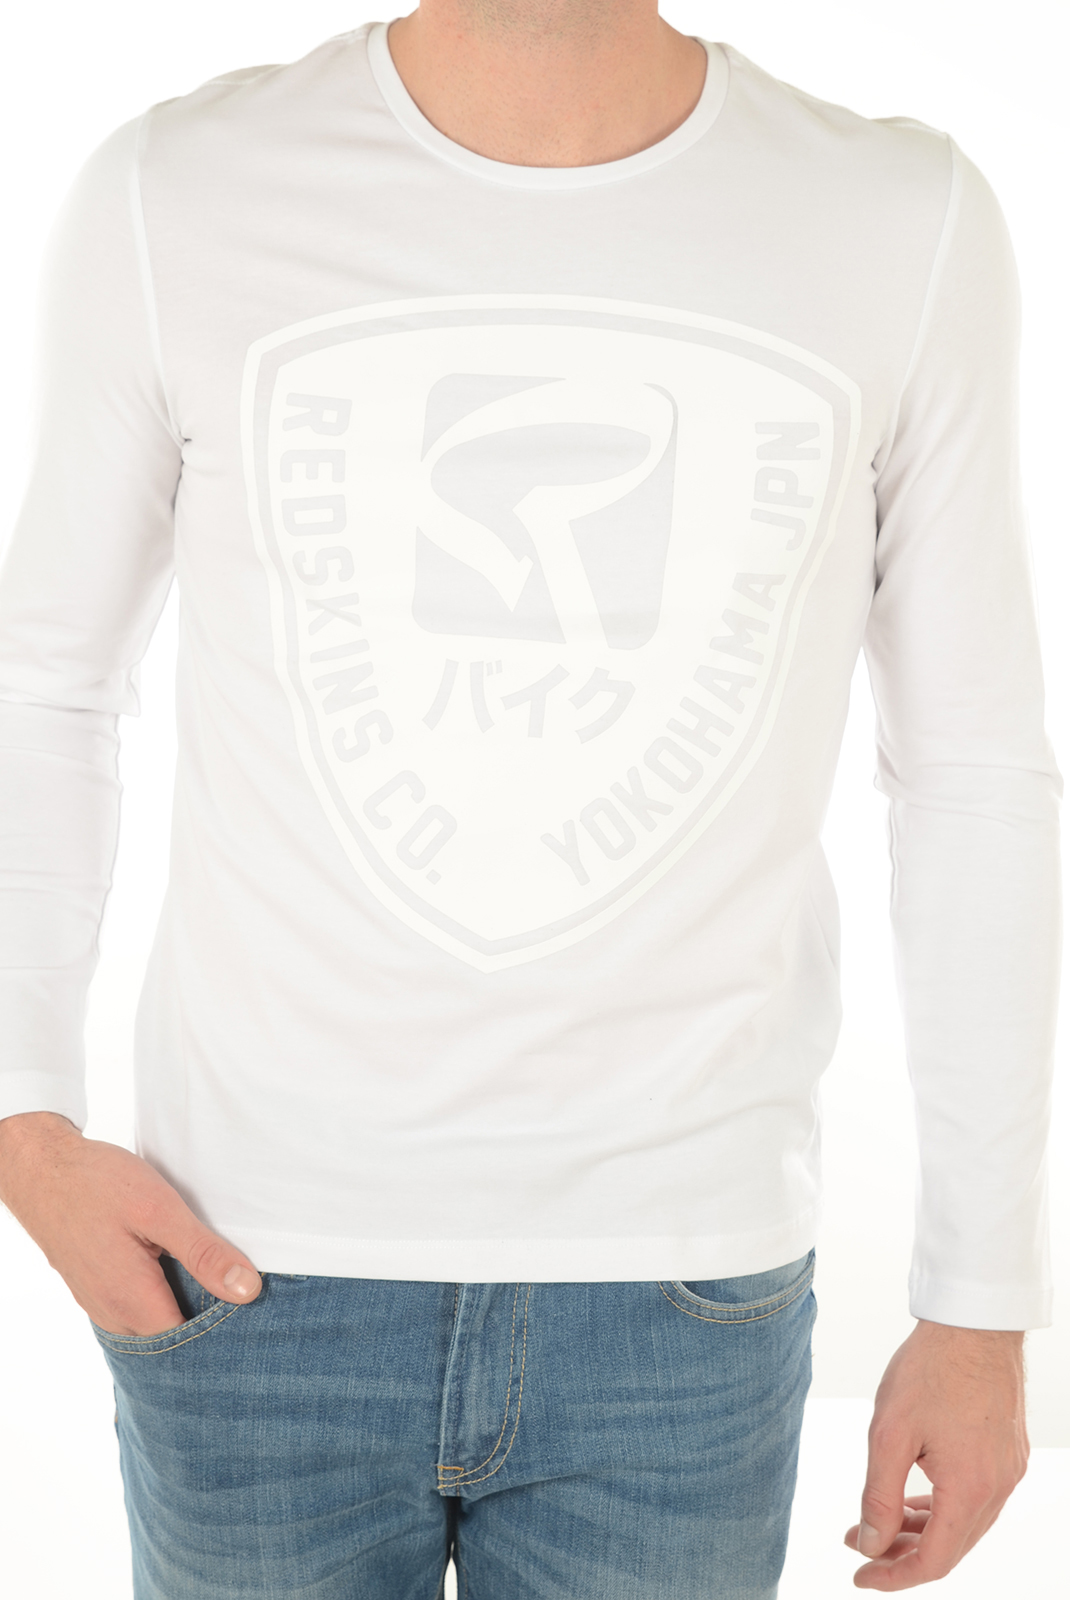 Tee-shirts manches longues  Redskins FROST CALDER WHITE